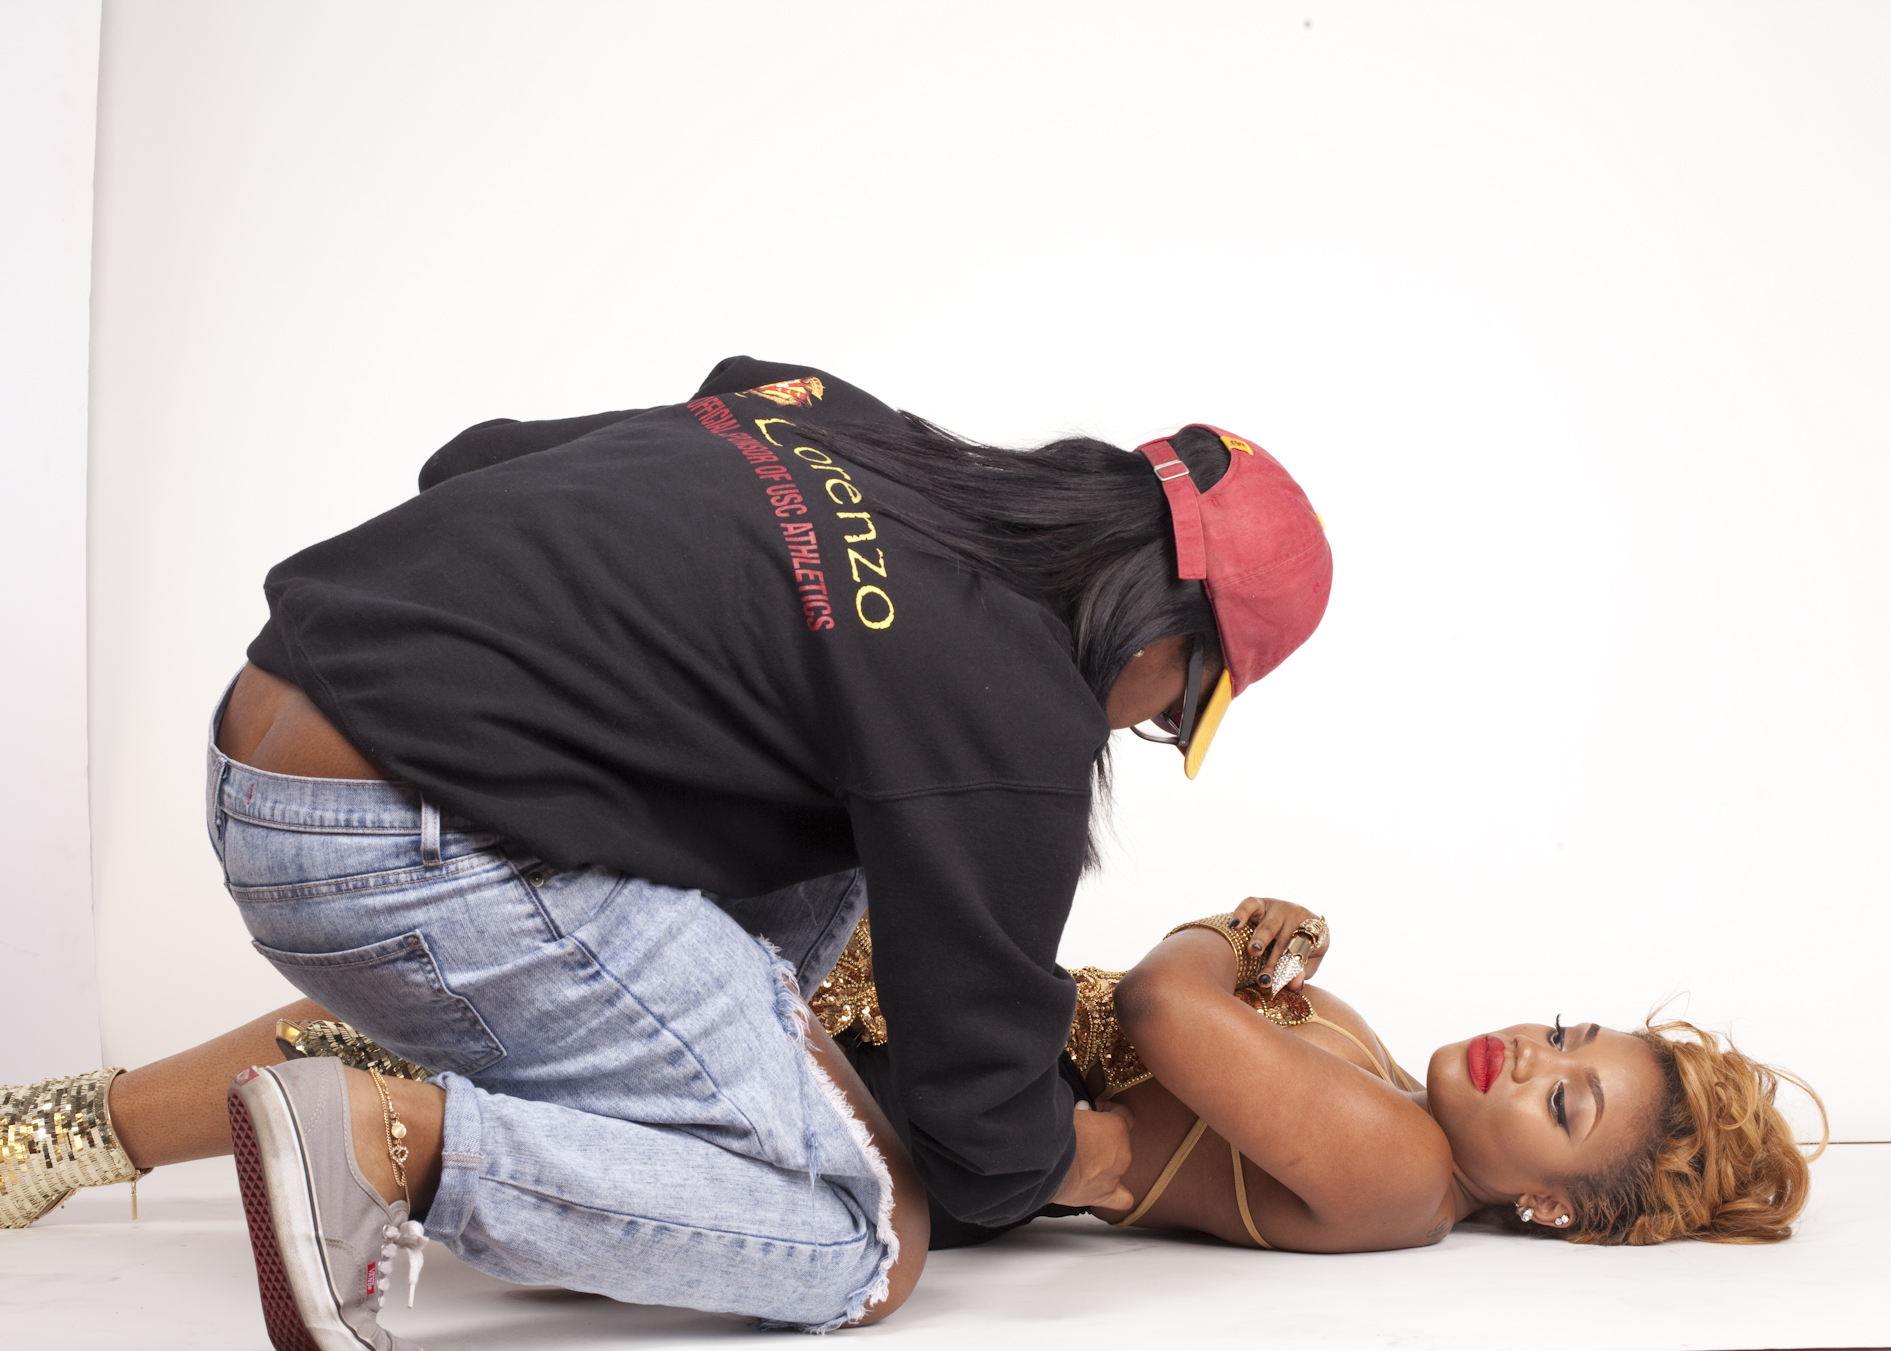 Behind the scenes with Keda's Album Cover shoot.